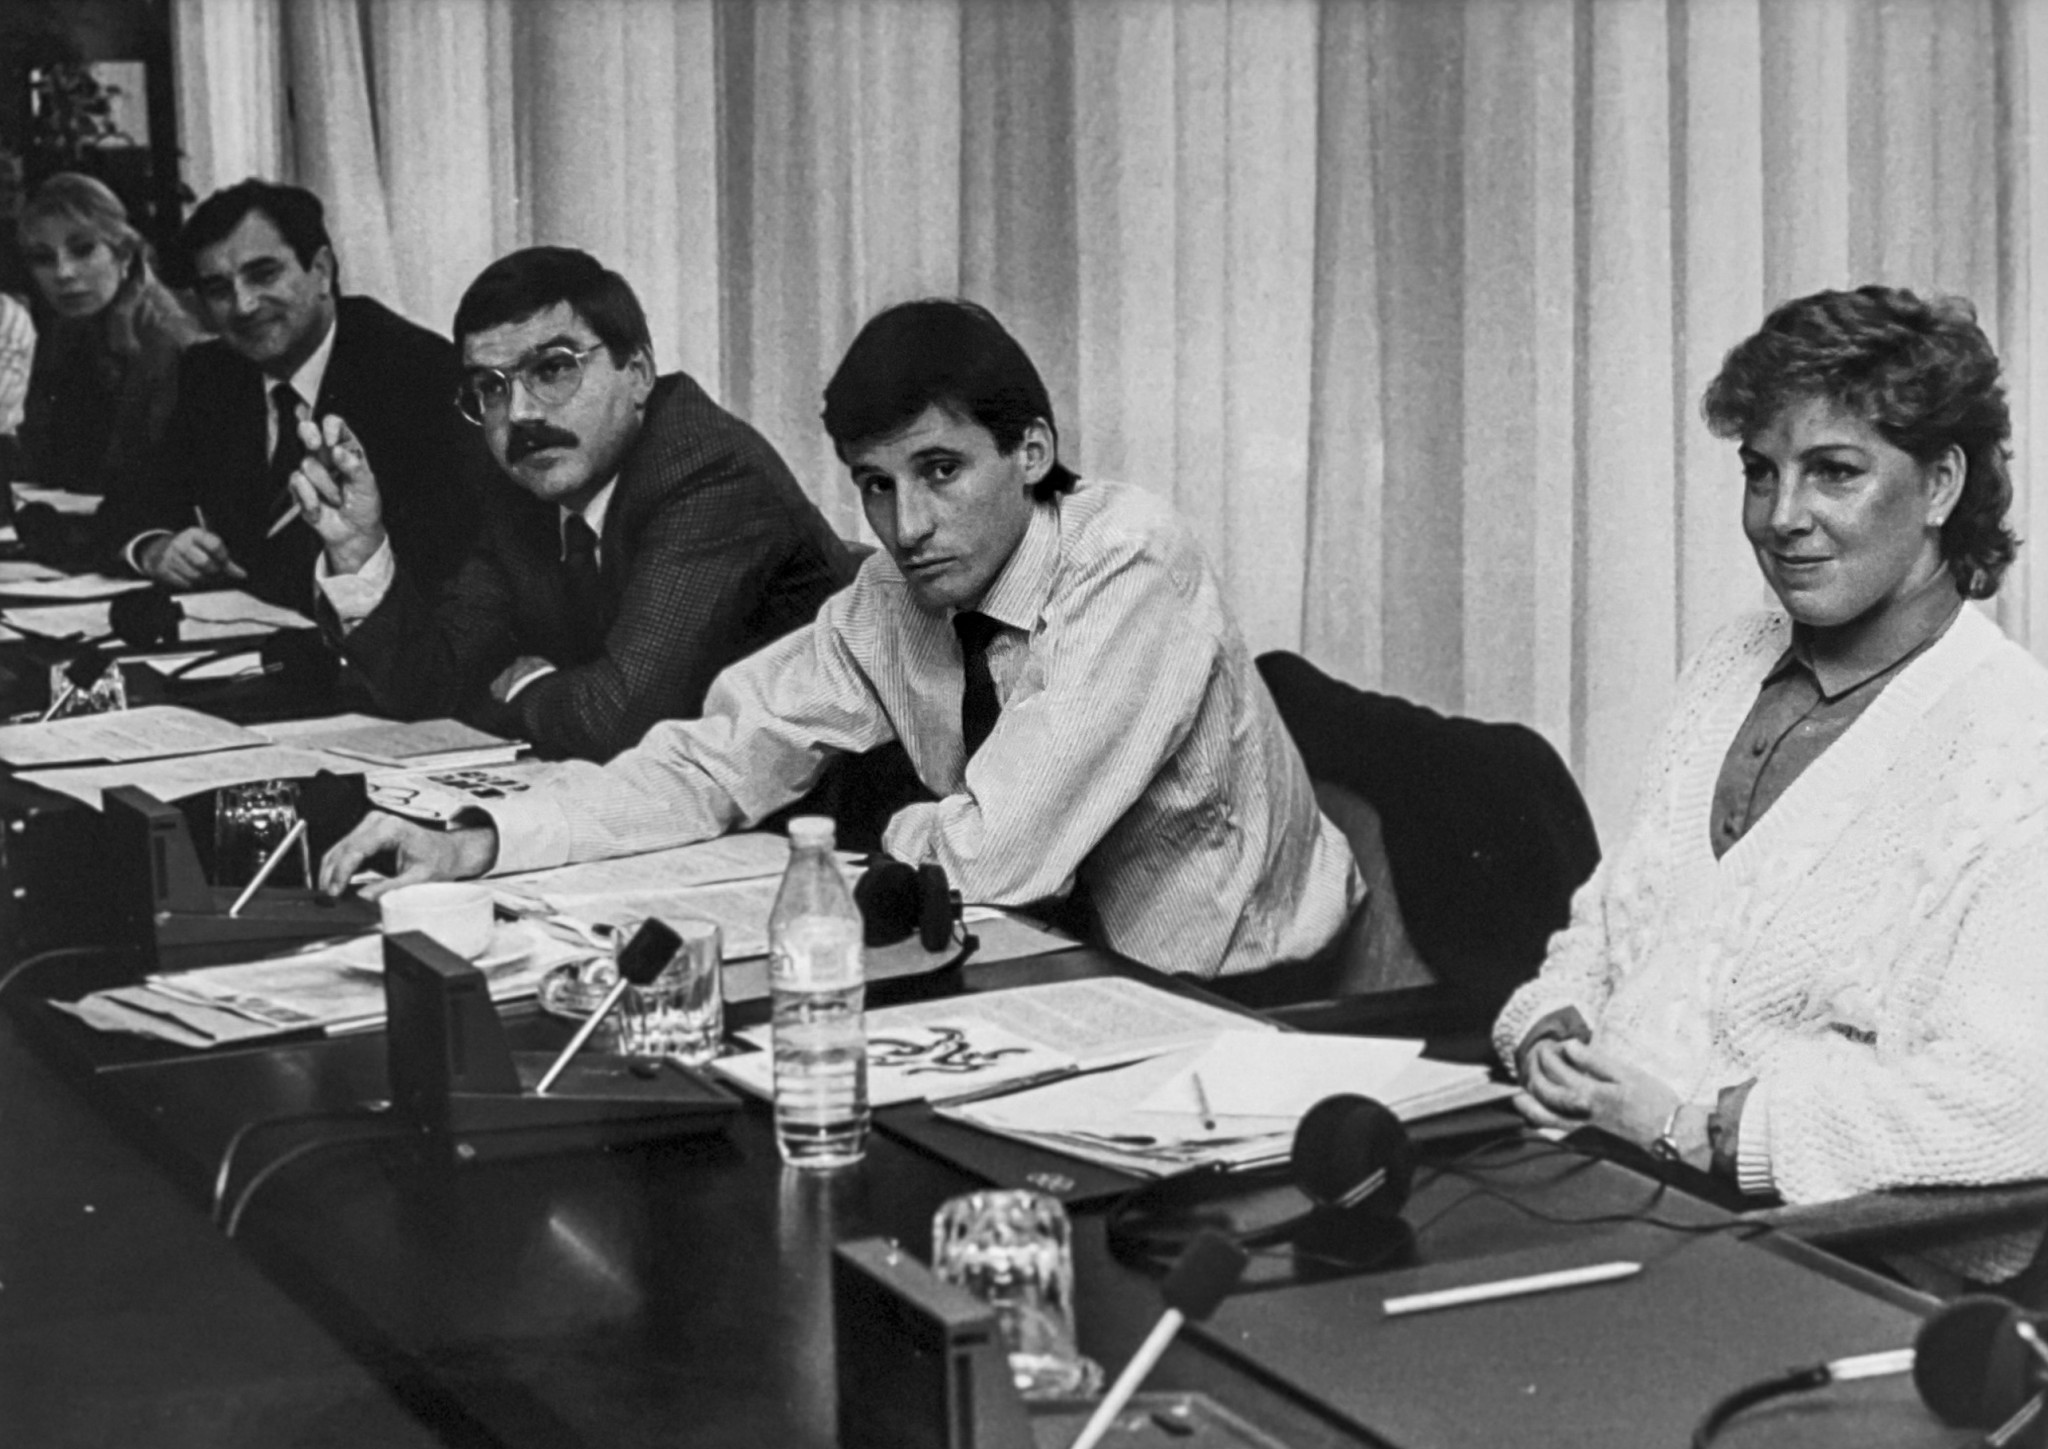 Thomas Bach, Sebastian Coe ad Michelle Ford - left to right - all played key roles in the establishment of the IOC's Athletes' Commission ©Michelle Ford